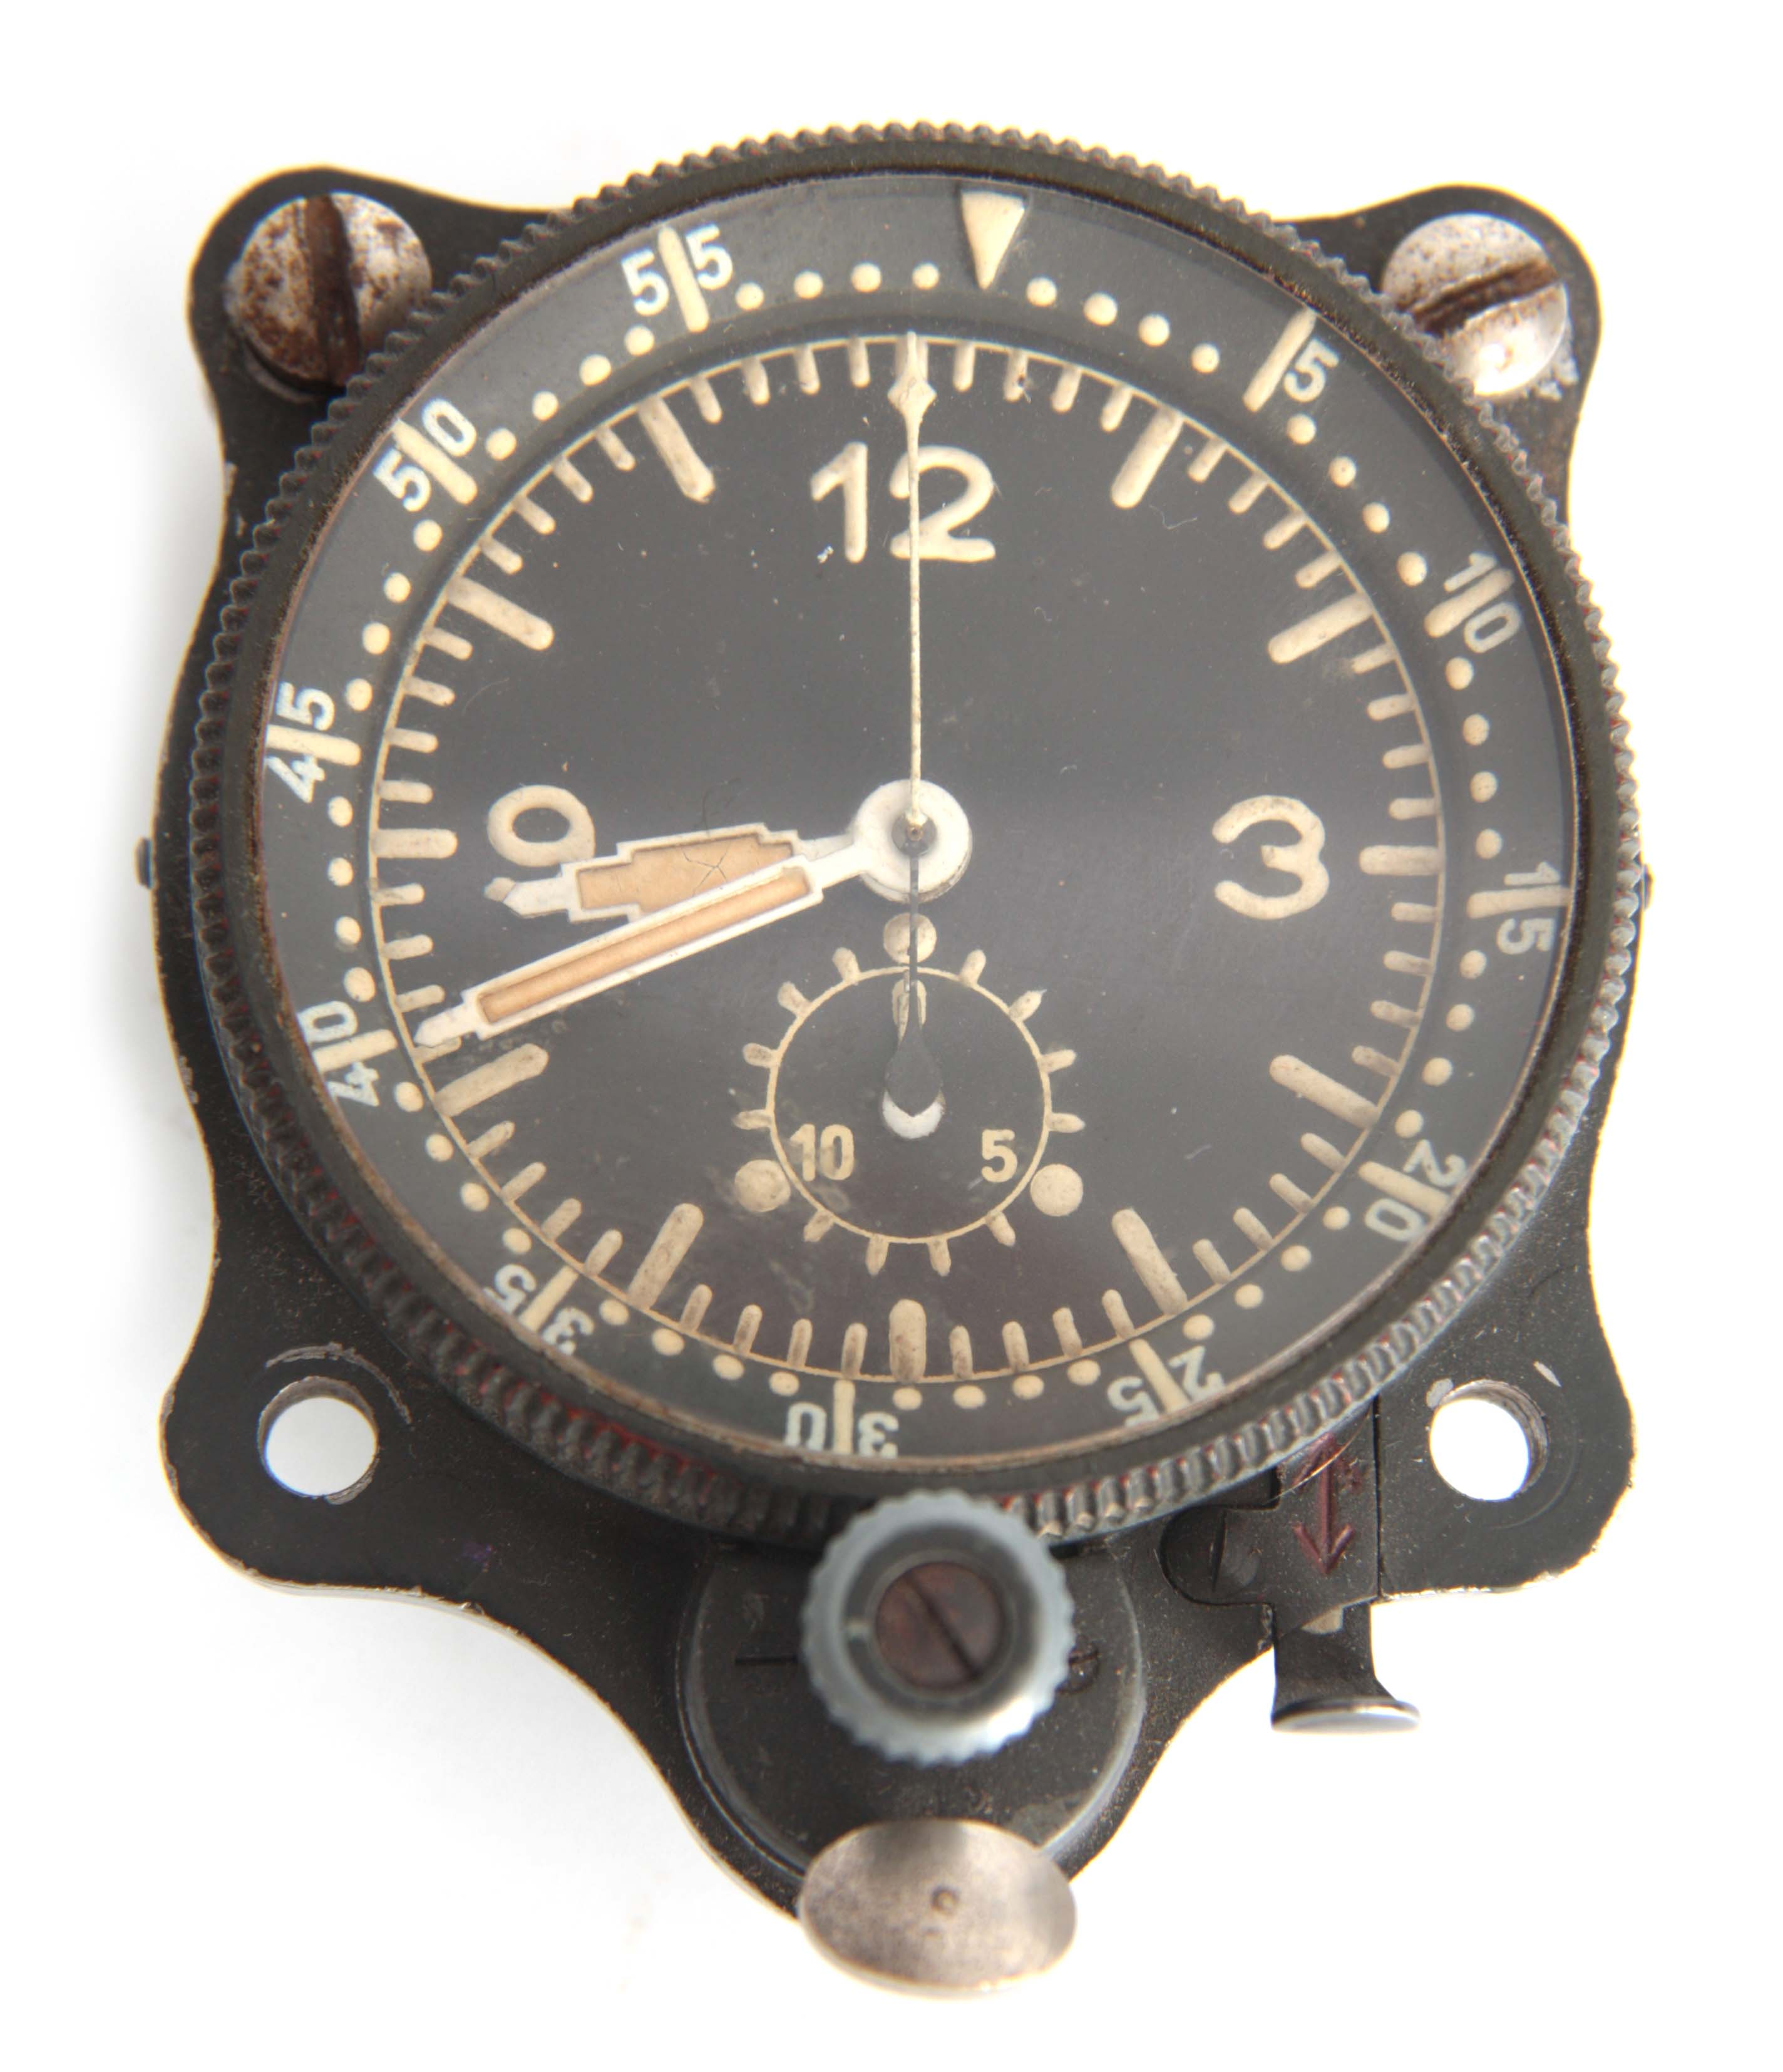 Lot 764 - A GERMAN WW2 LUFTWAFFE NAVIGATOR'S COCKPIT CLOCK the black alloy case with rotating bezel